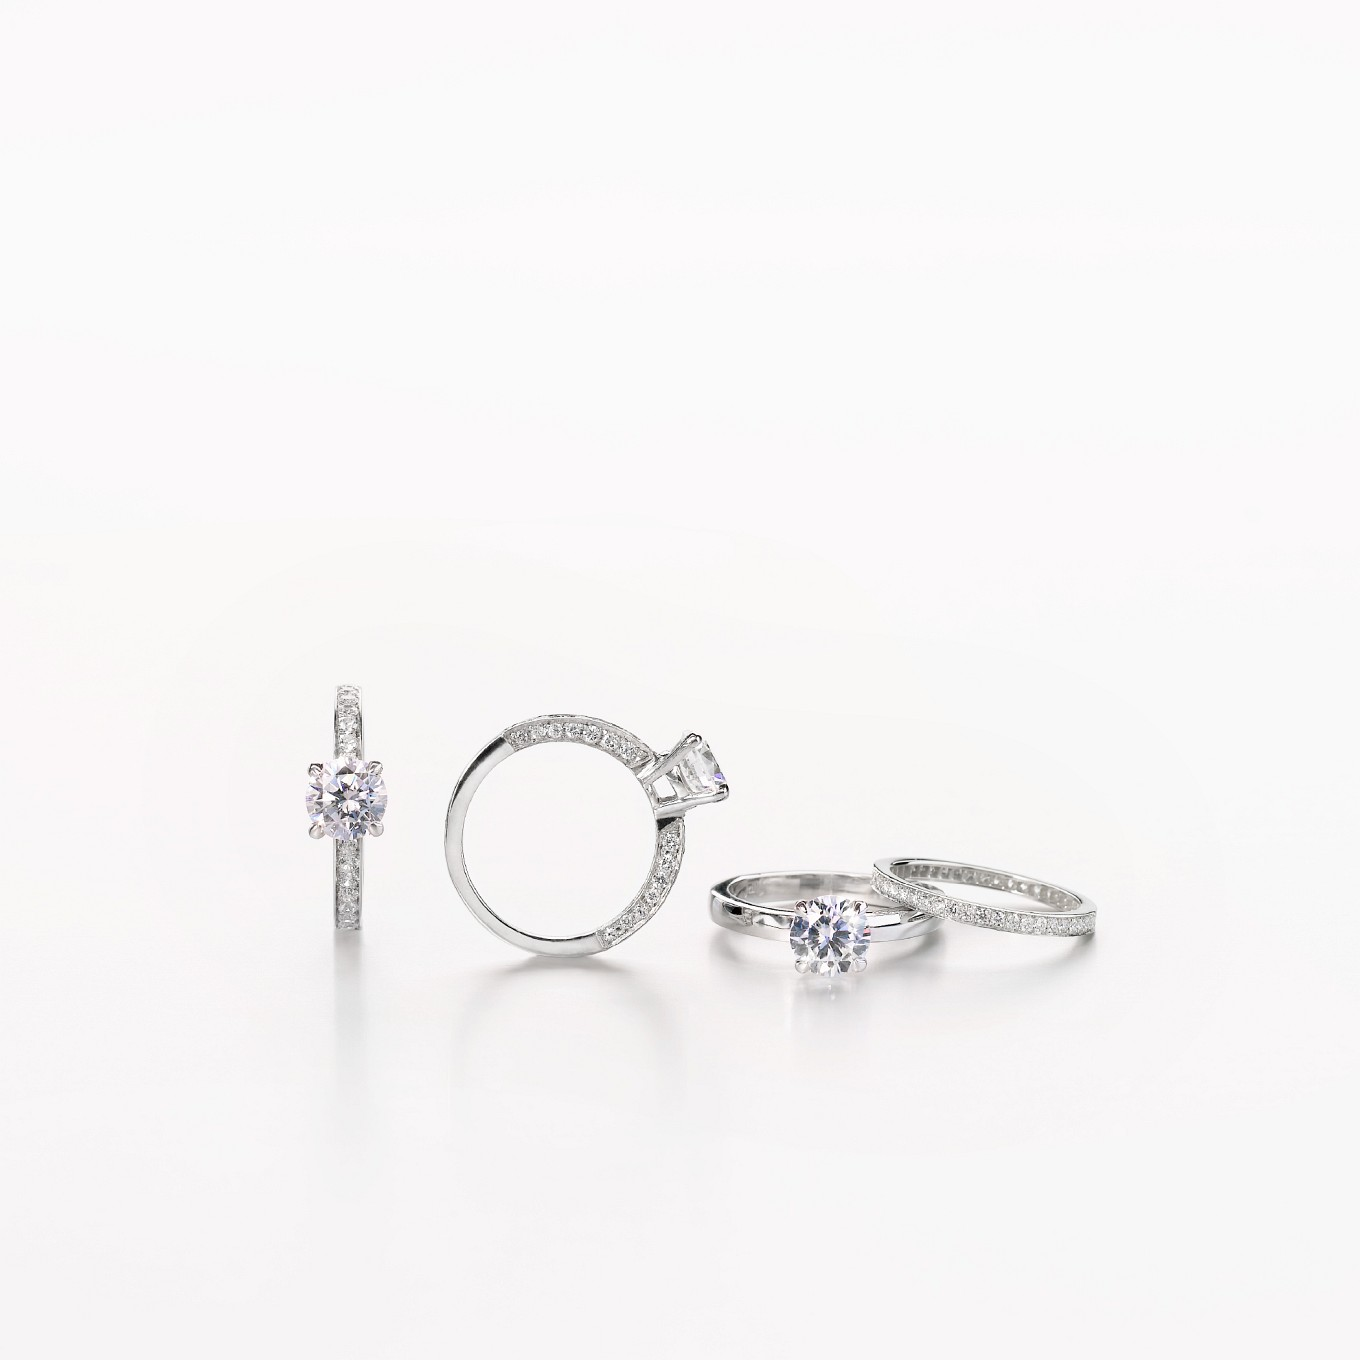 CLASSIC SOLITAIRE RINGS FROM LEFT: SOLITAIRE WITH PARTIAL DIAMOND BAND, SOLITAIRE WITH FULL DIAMOND BAND, SOLITAIRE WITH PLAIN BAND, MINI DIAMOND ETERNITY BAND